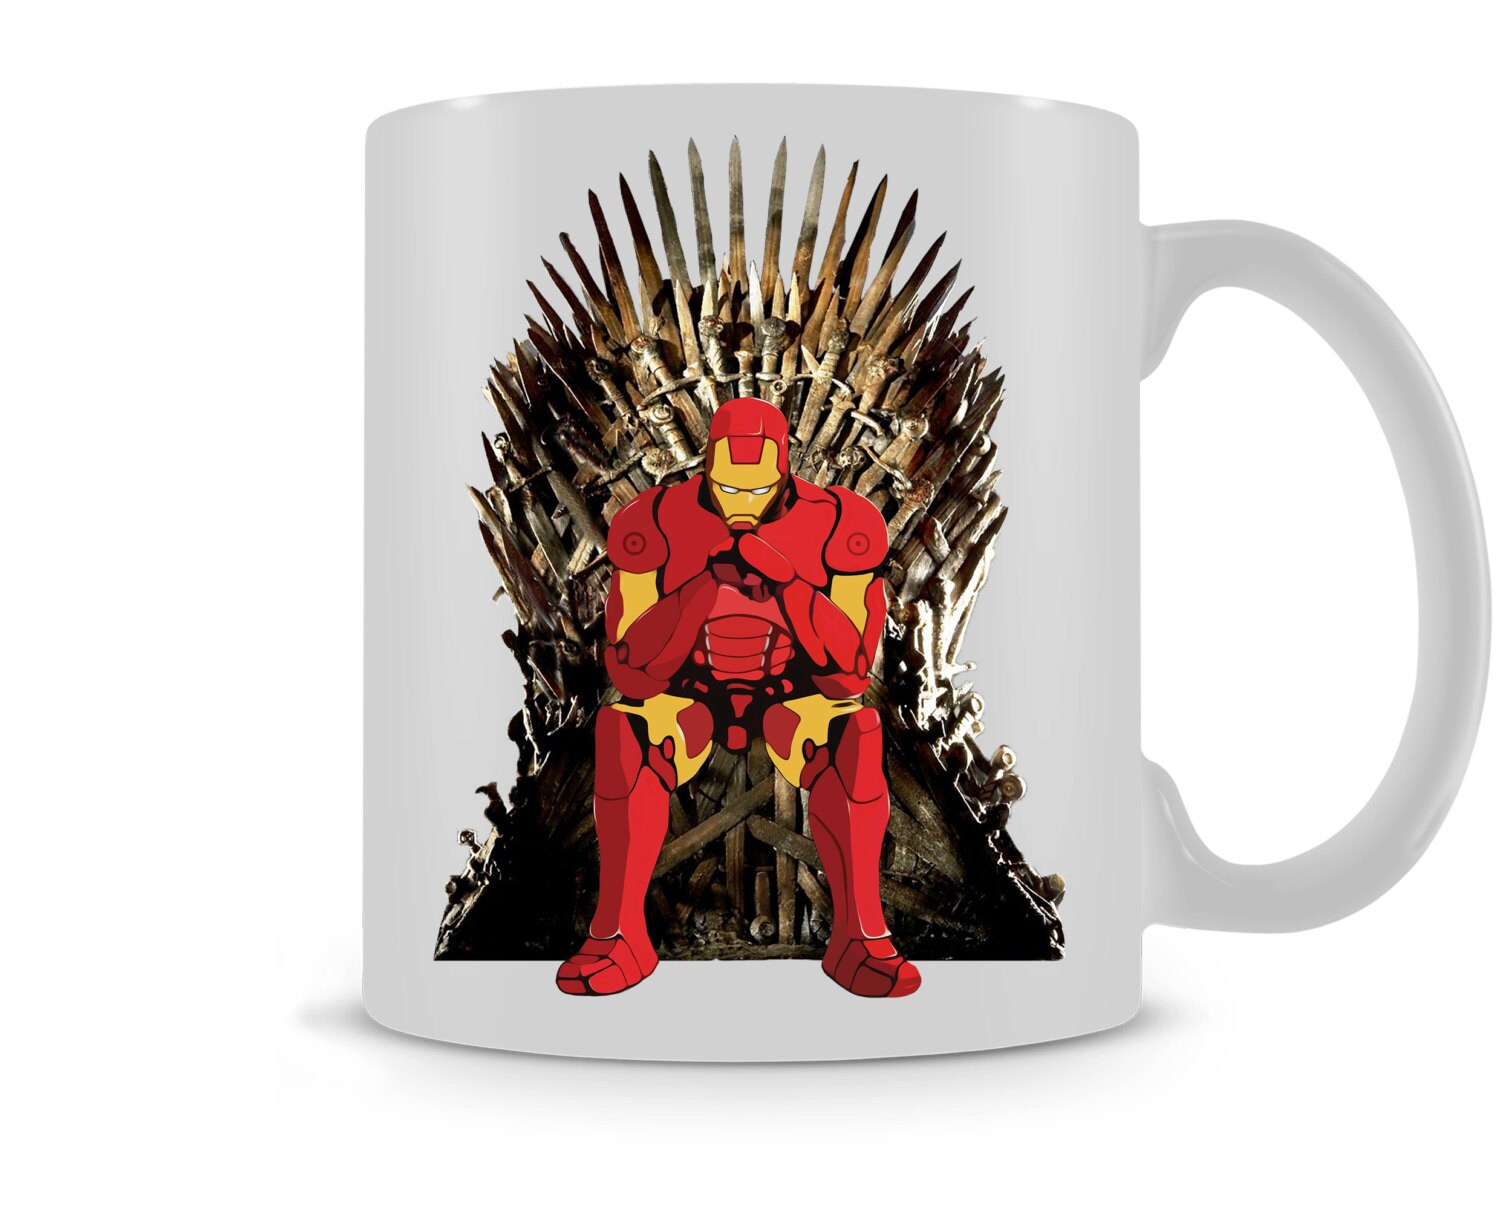 Game of thrones inspired iron man funny mug gift cup for Game of thrones gifts for men